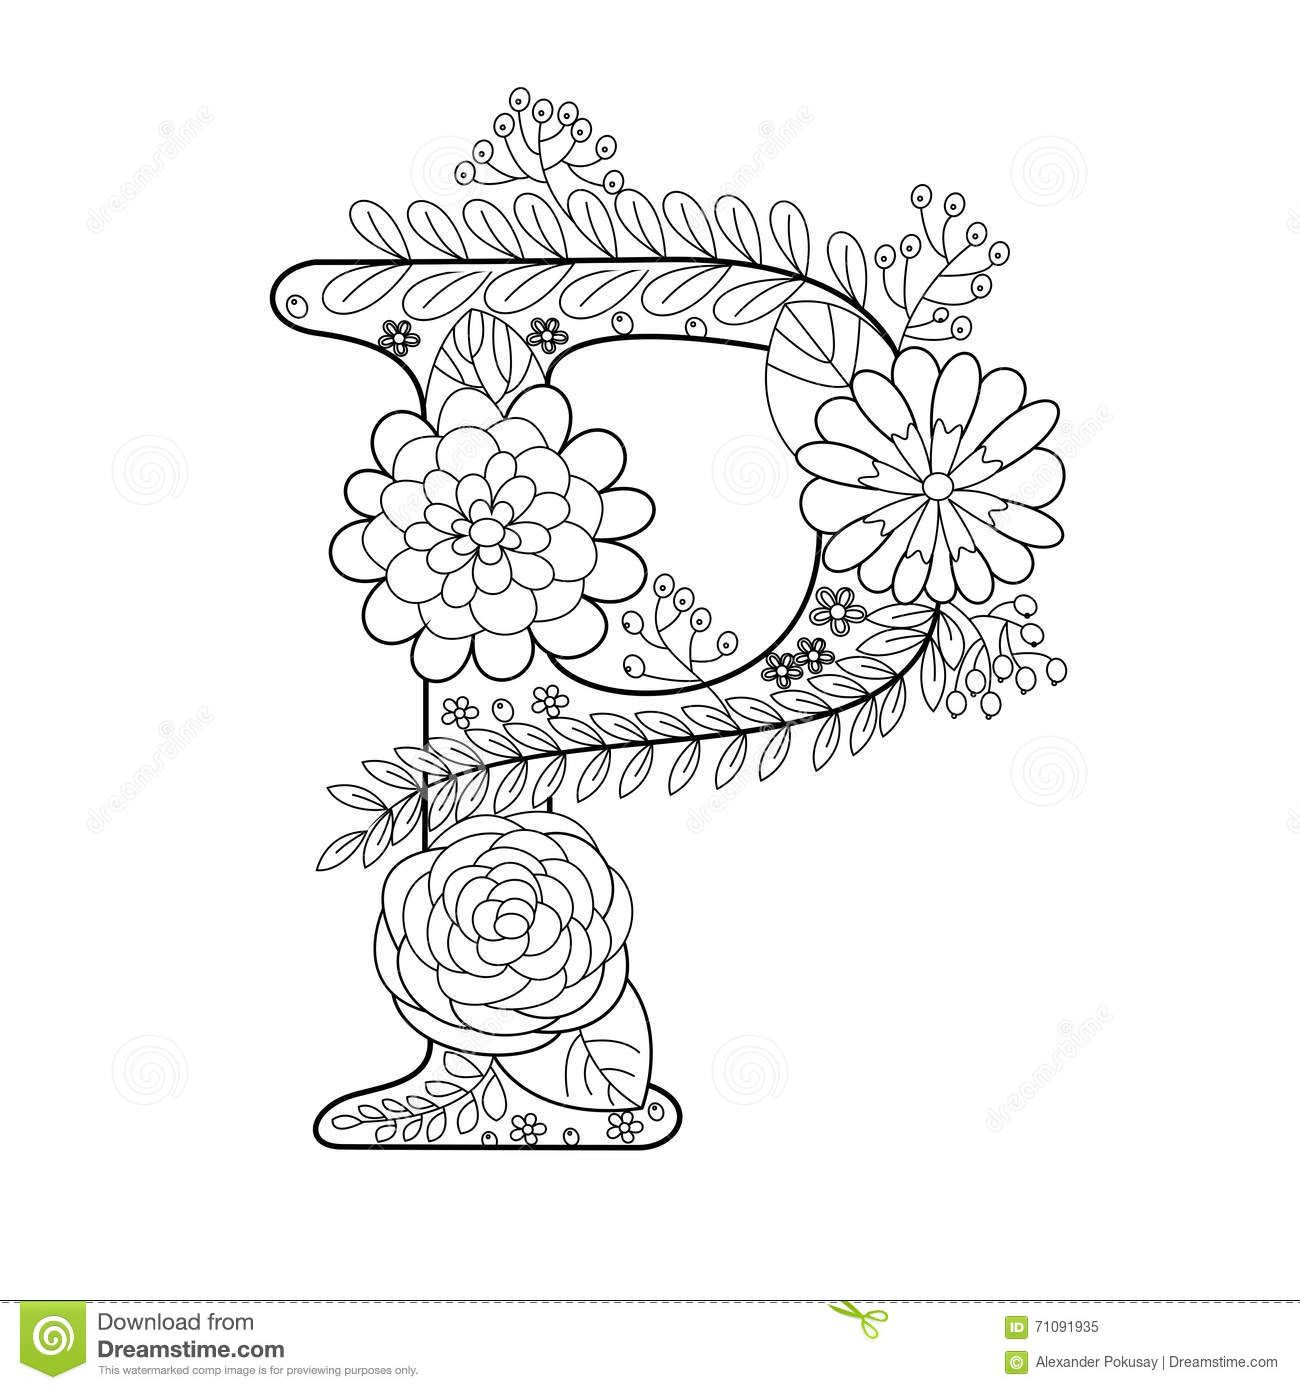 Letter P Coloring Book For Adults Vector Stock Vector Image 71091935 Coloring Books Coloring Letters Coloring Pages